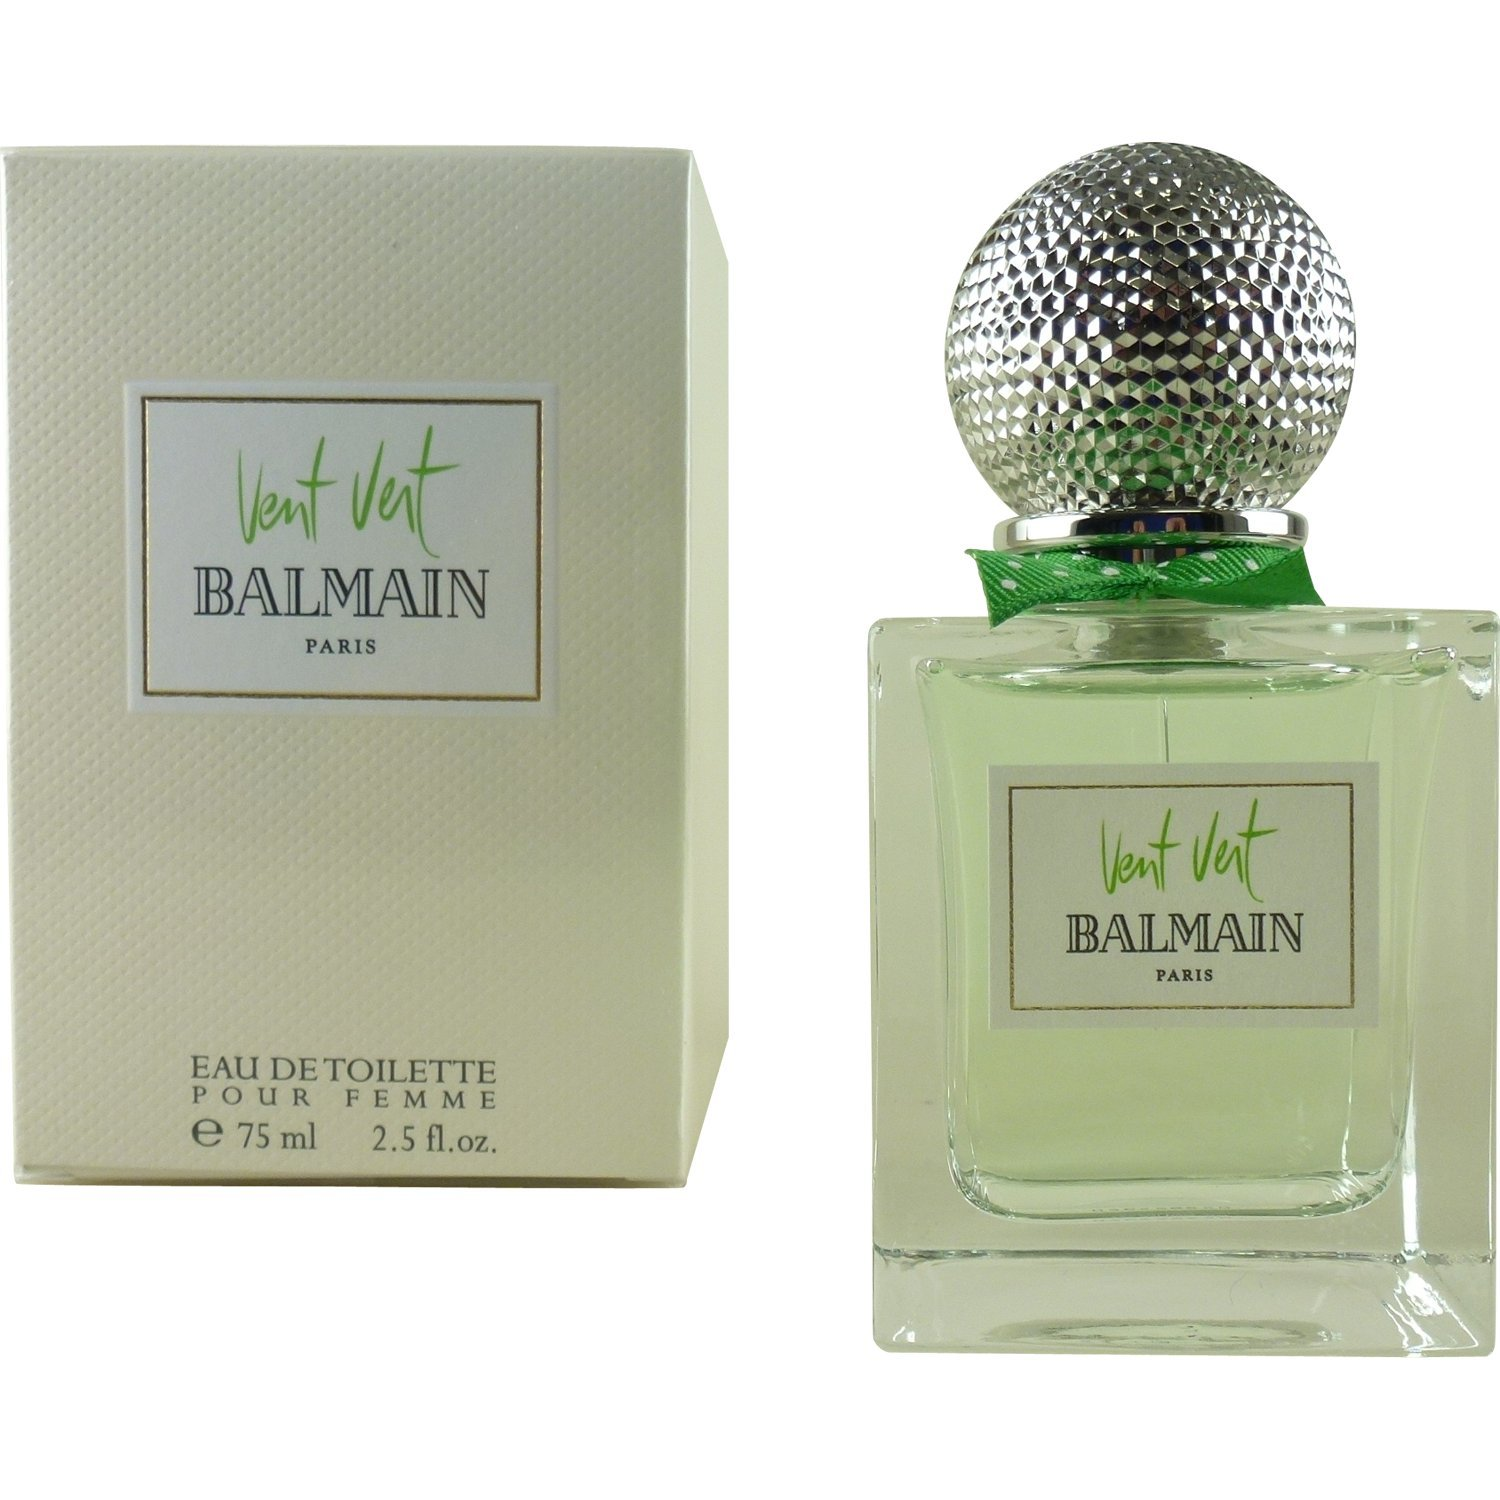 Pierre Balmain Vent Vert Women s Eau de Toilette Spray, 2.5 Ounce